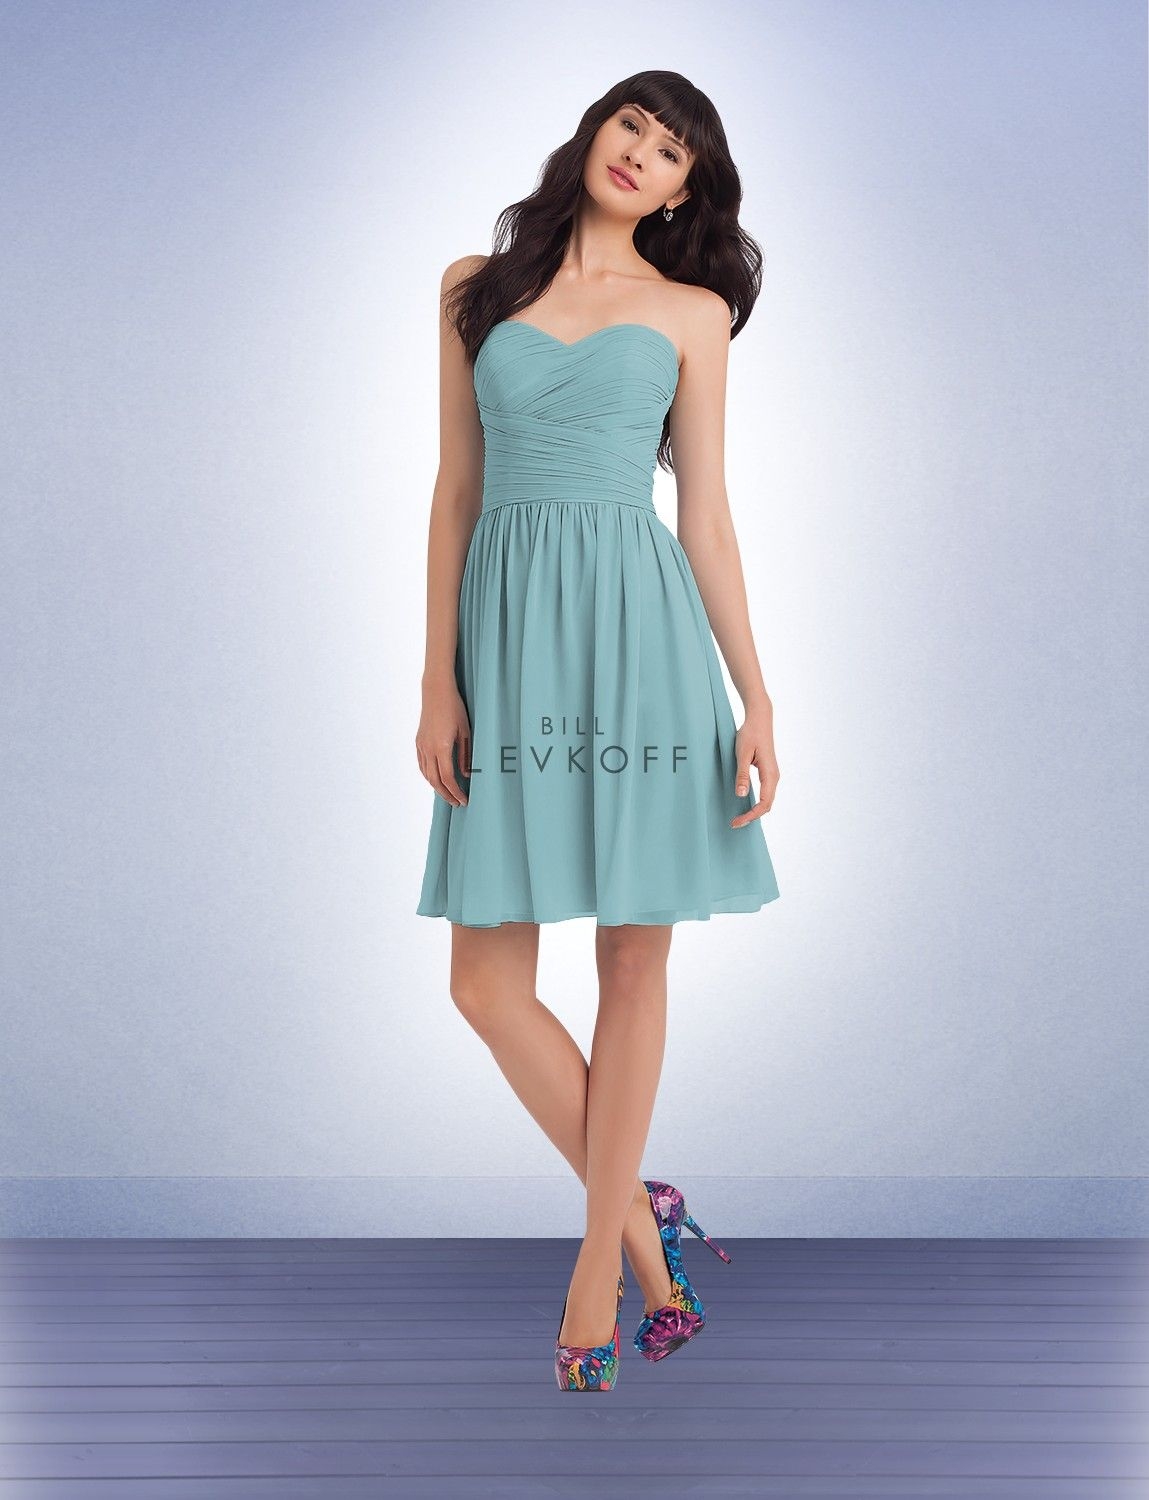 Bill Levkoff Bridesmaid Dress Style 1105 - Debra\'s Bridal Shop at ...